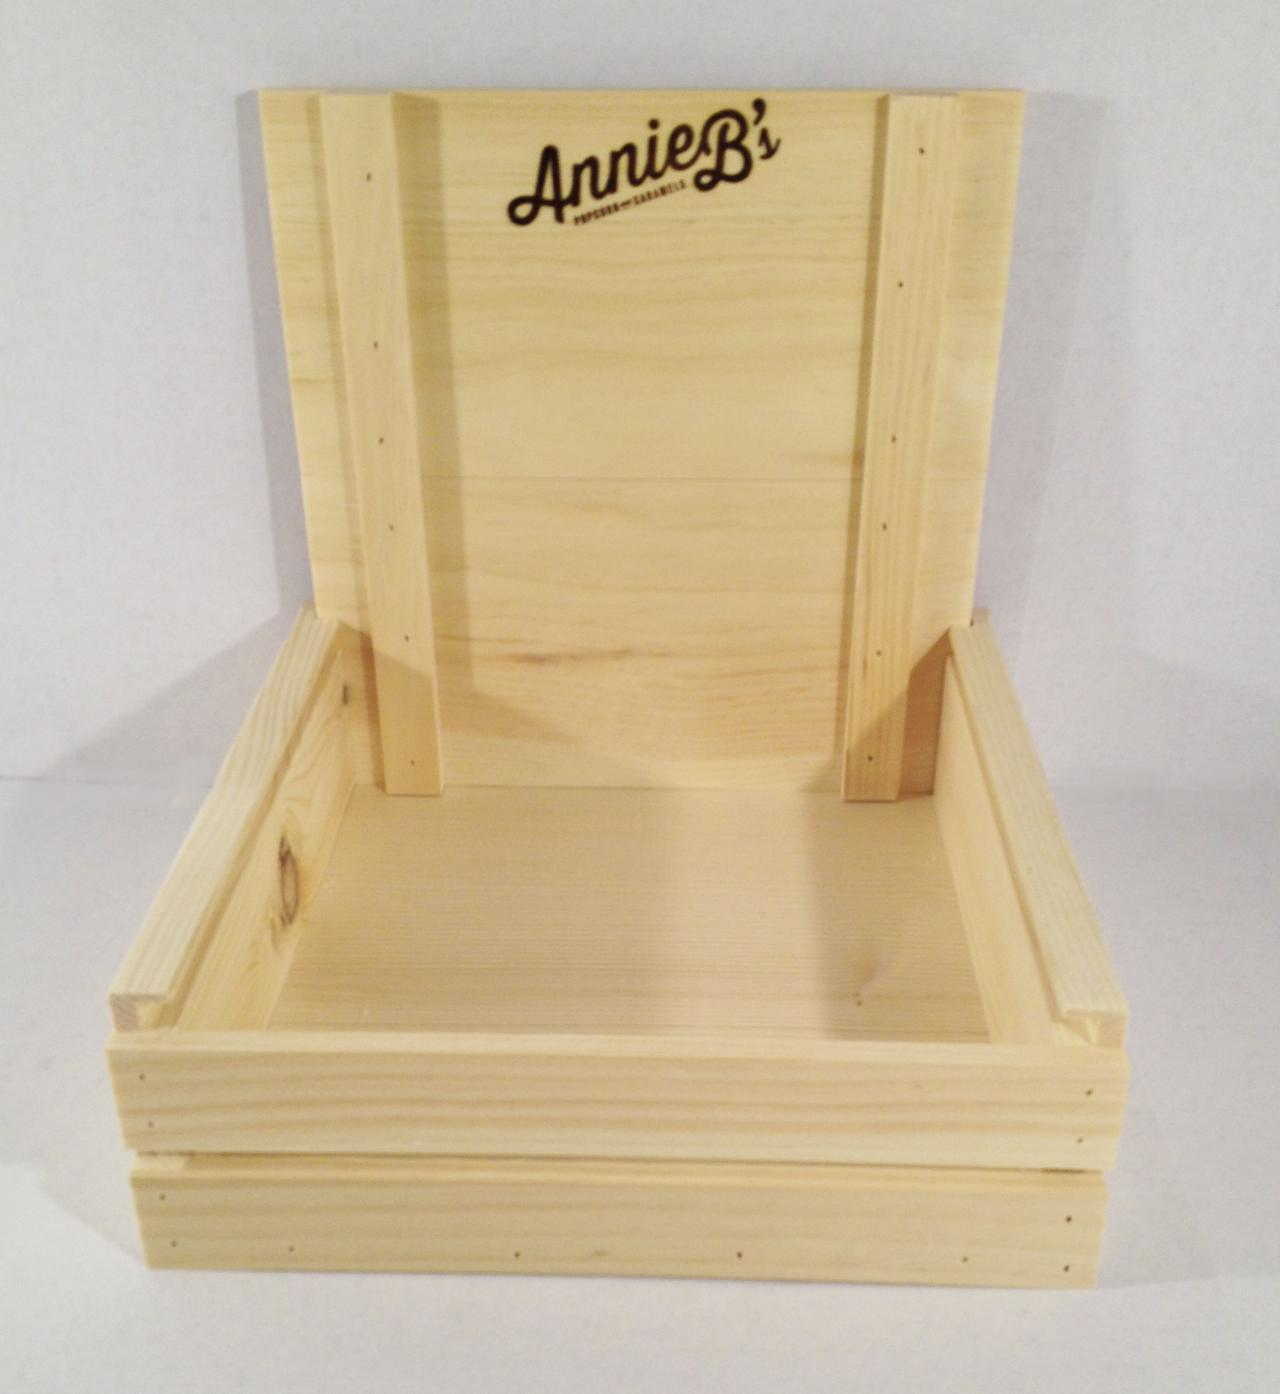 Annie B Caramel Candy Rustic Crate With Cover Wood Counter POP Display Branded